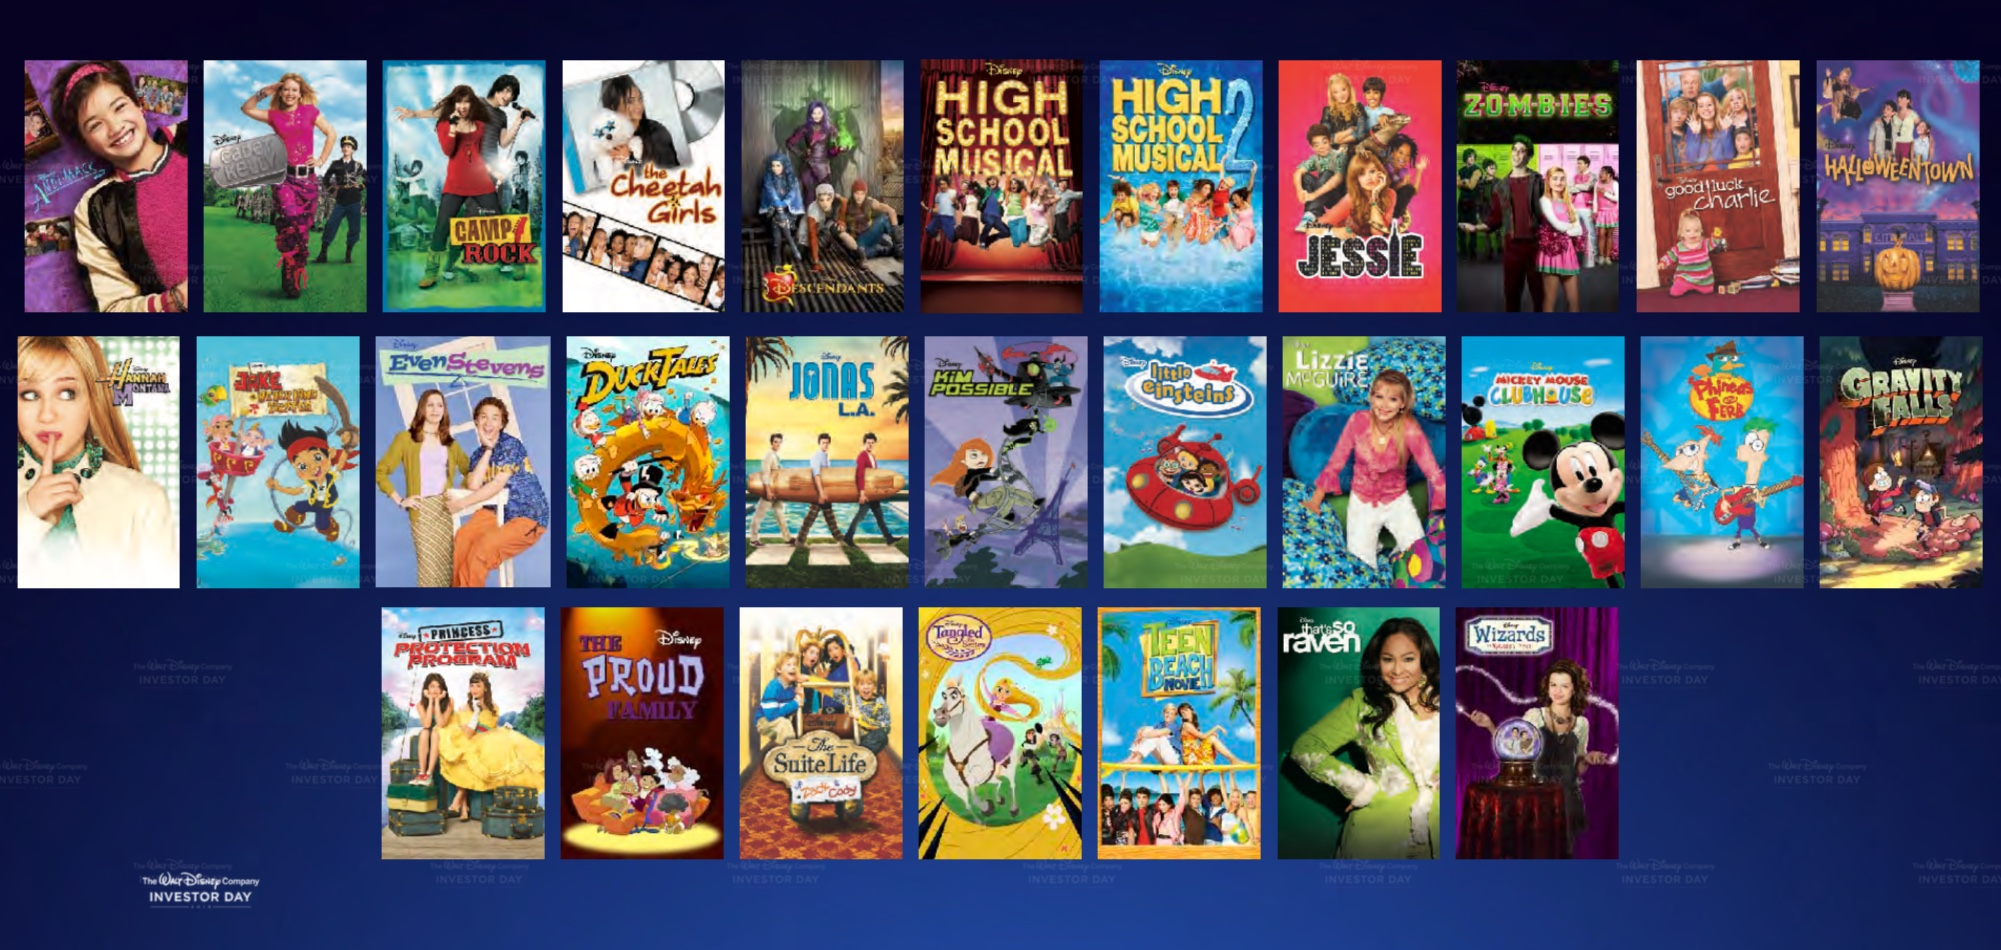 Disney Channel Library Content Moving To Disney+ | What's On